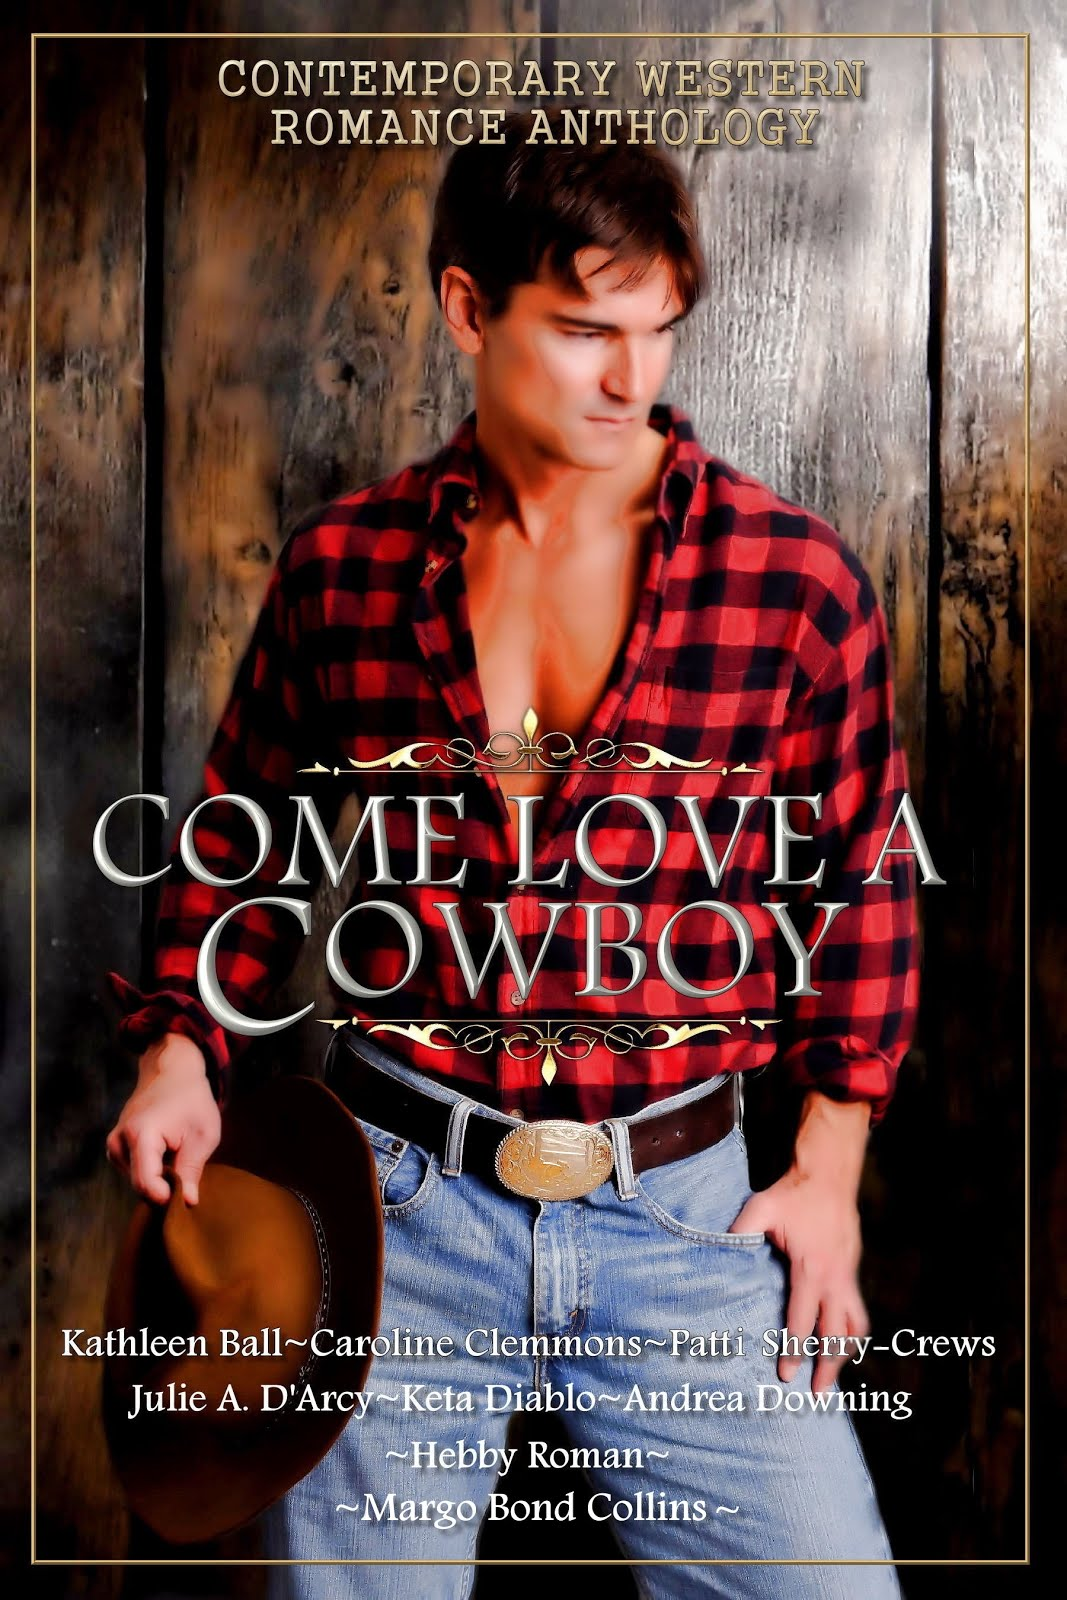 FREE SAMPLER OF COME LOVE A COWBOY